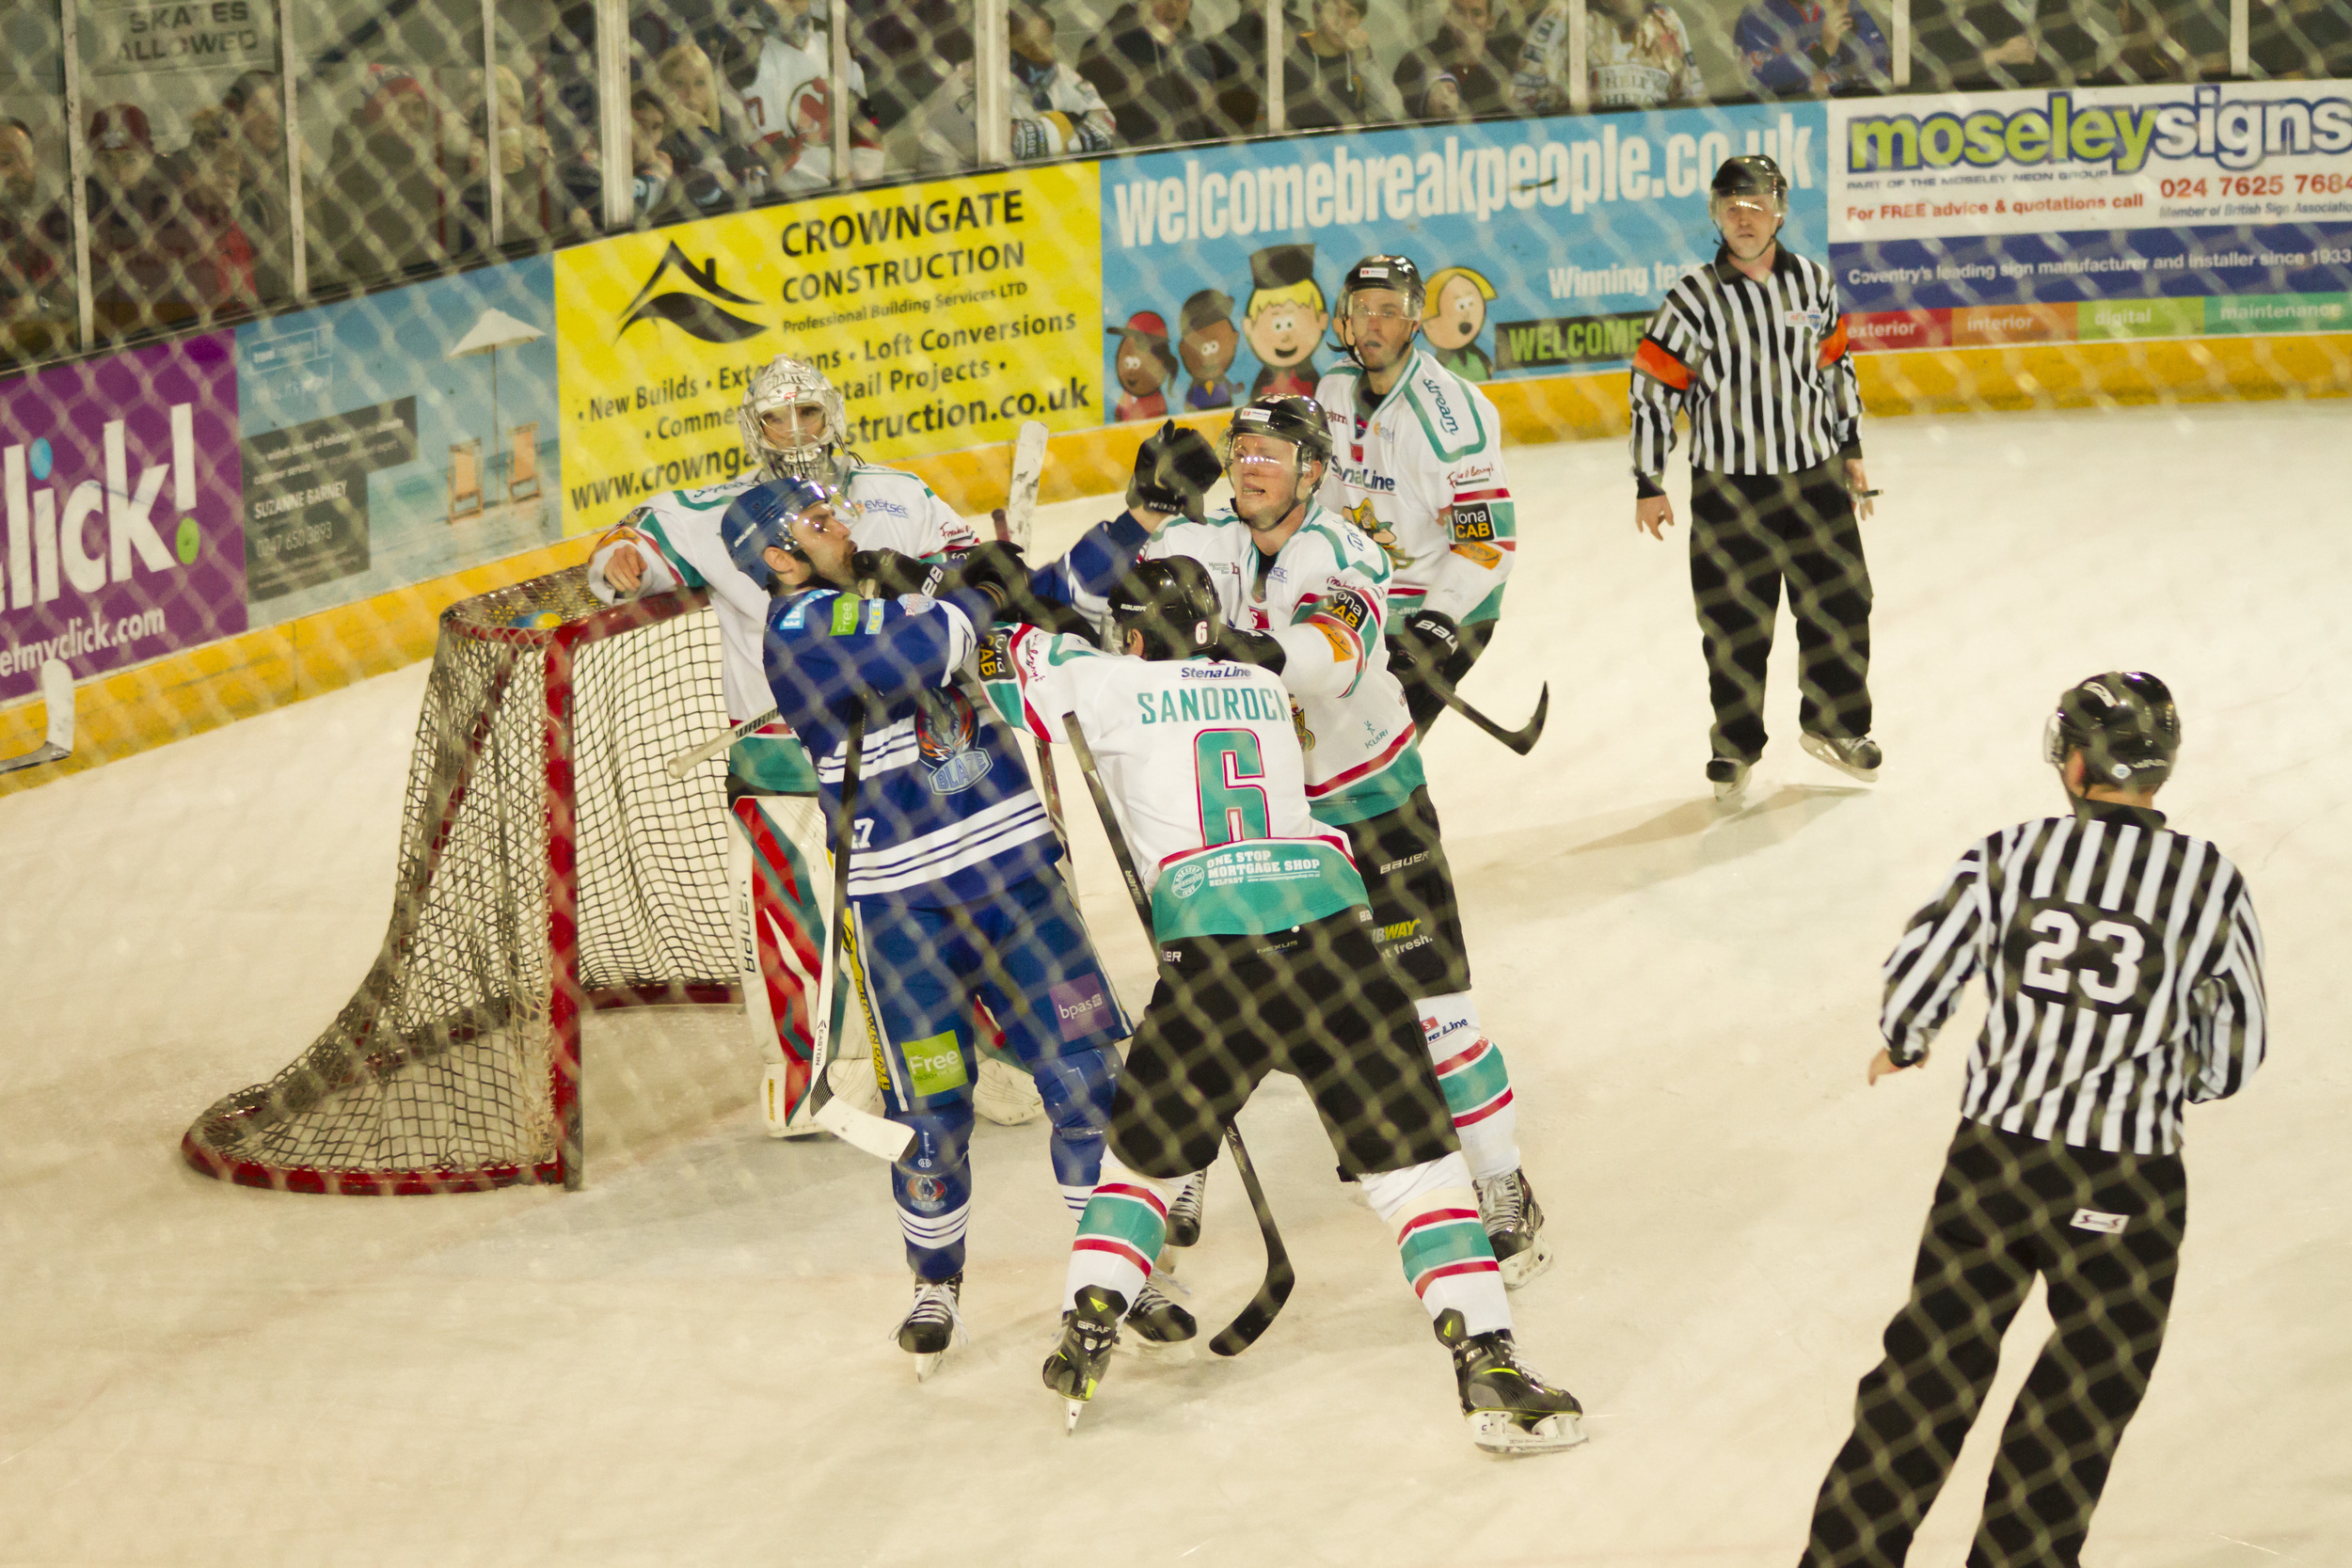 As with lots of sporting events, there are often off-the-ball / puck moments which can easily be missed, but can be the most newsworthy items that need illustrating. The frenetic pace of ice hockey can create hot-headed instances when players lash out at each other. In this image the Belfast Giants (white) player's fist is in contact with his Coventry Blaze (blue) opponent.